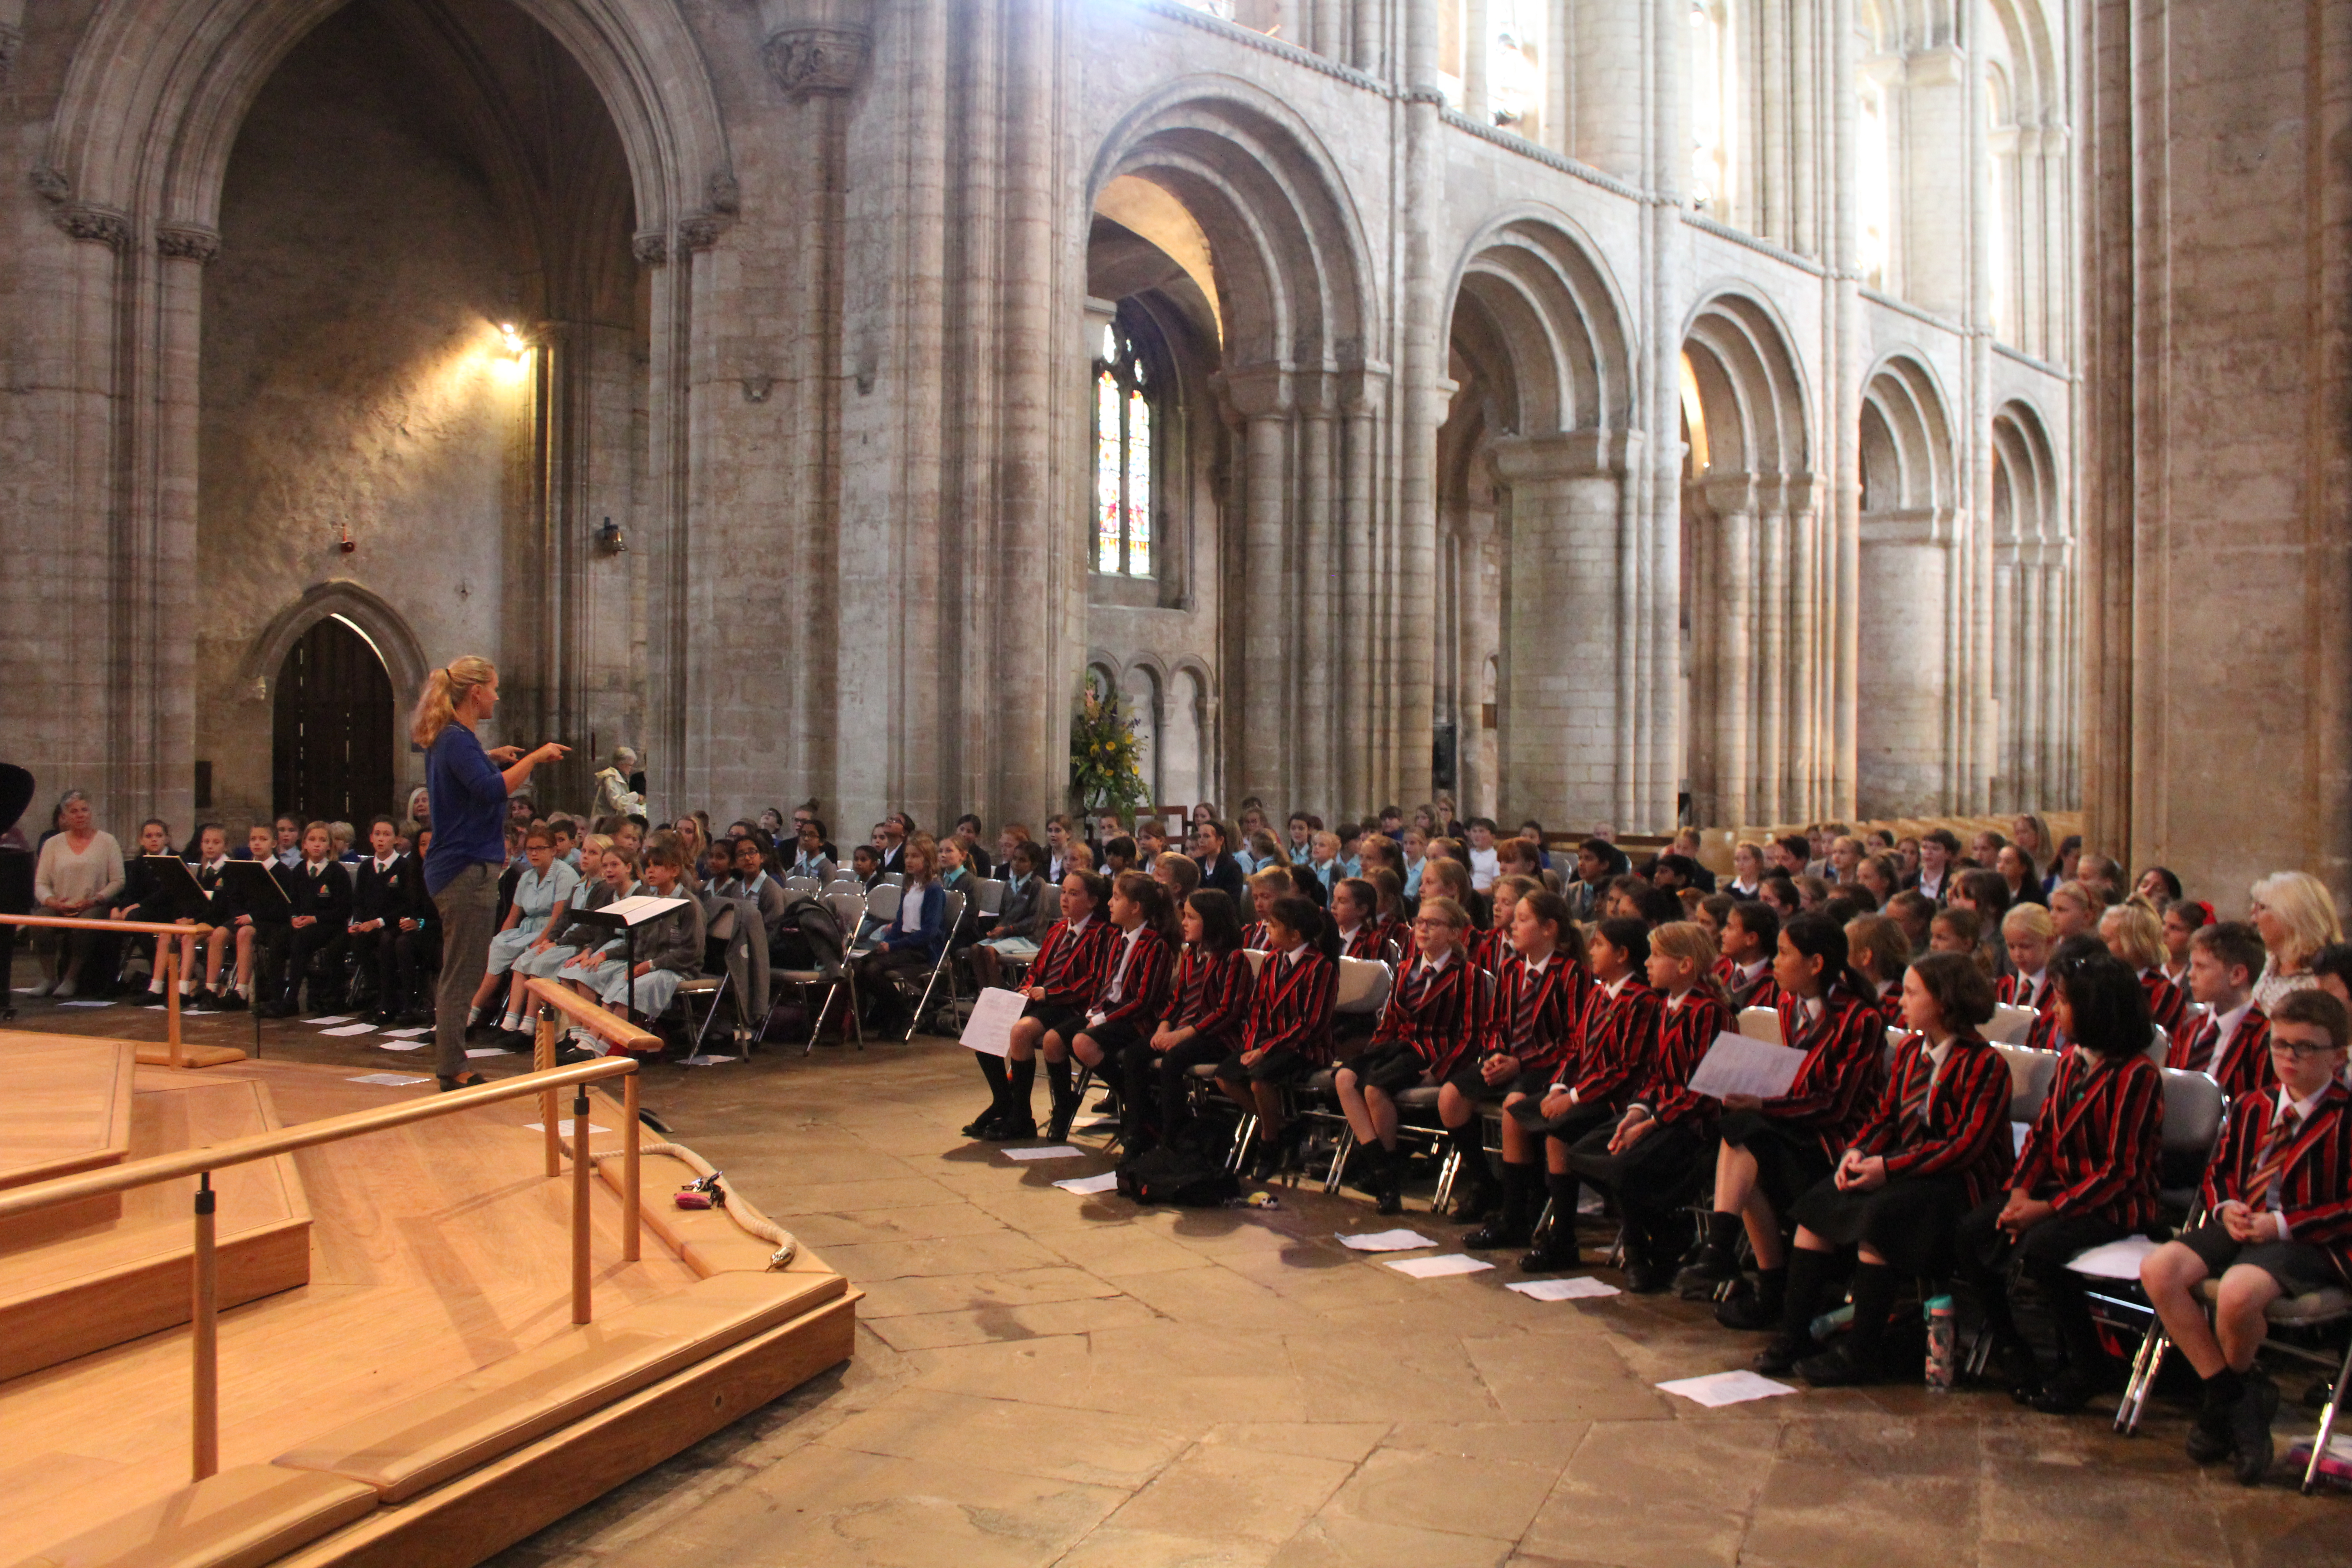 Pupils have their voices well and truly heard at King's Ely Choral Day